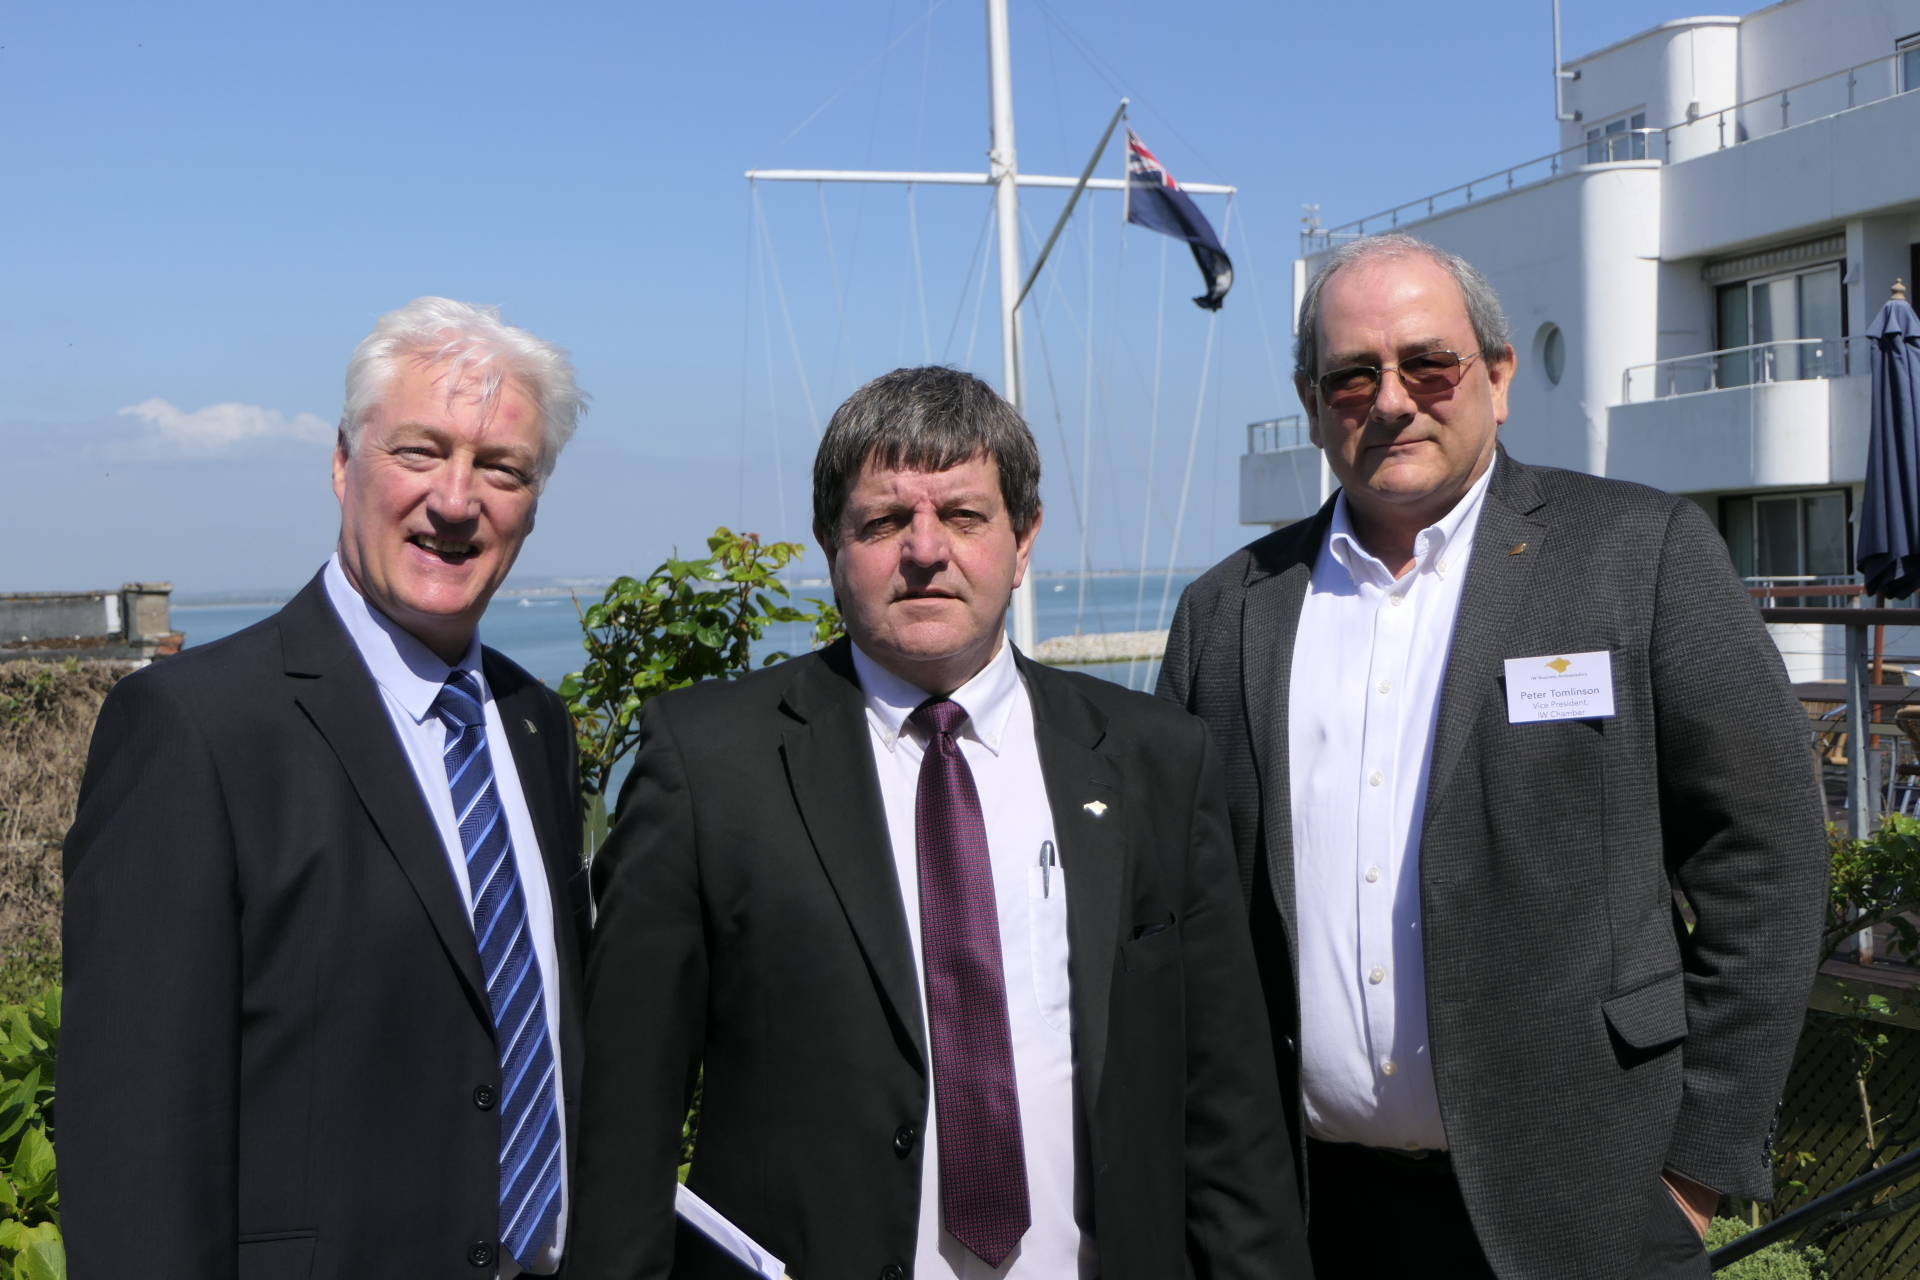 Island Ambassadors to drive investment and economic growth